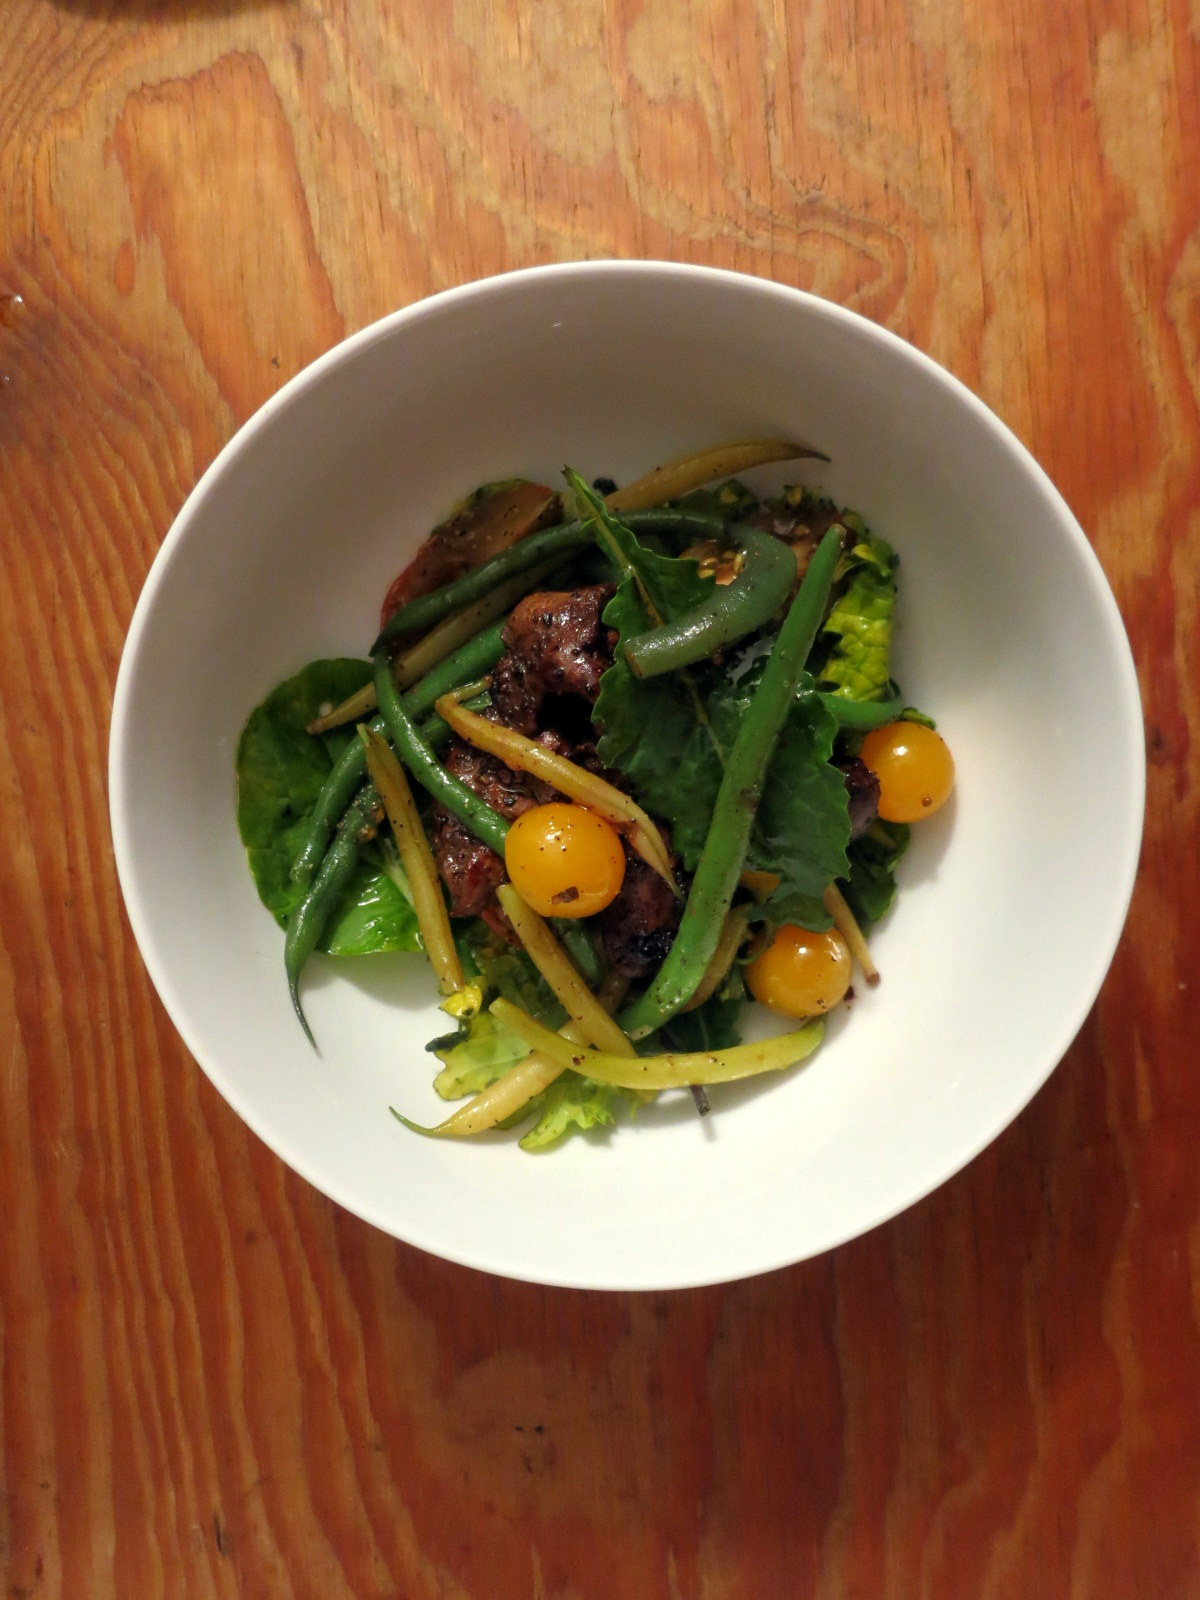 Chicken liver, green bean and heirloom cherry tomato salad